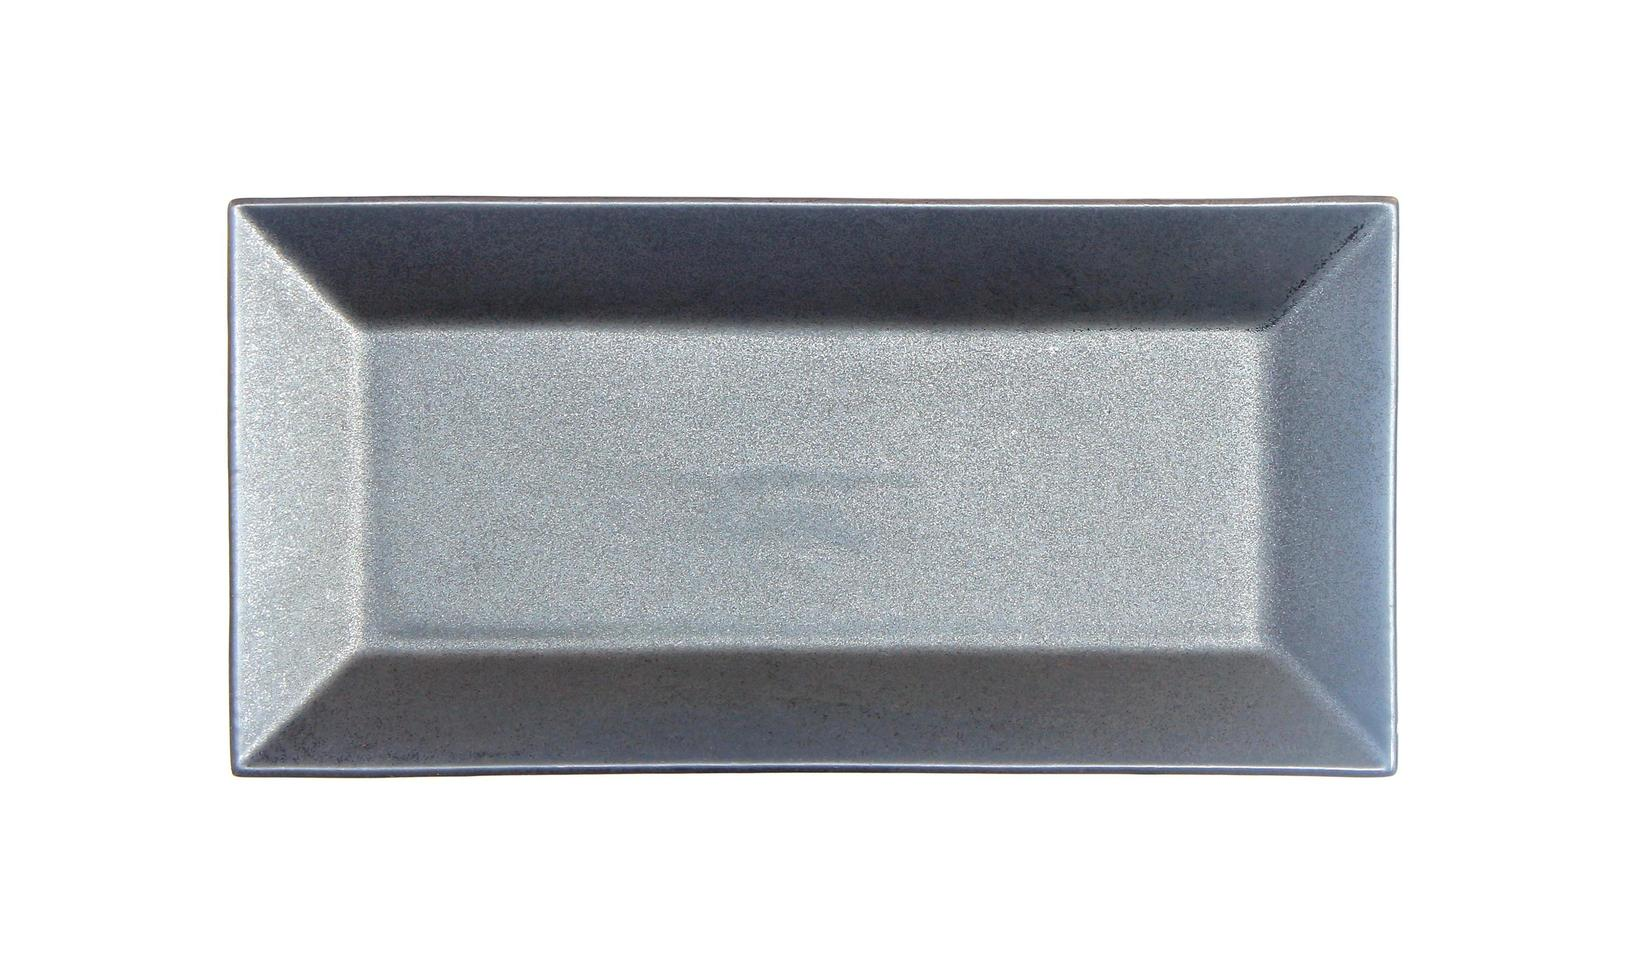 Top view of black tray photo